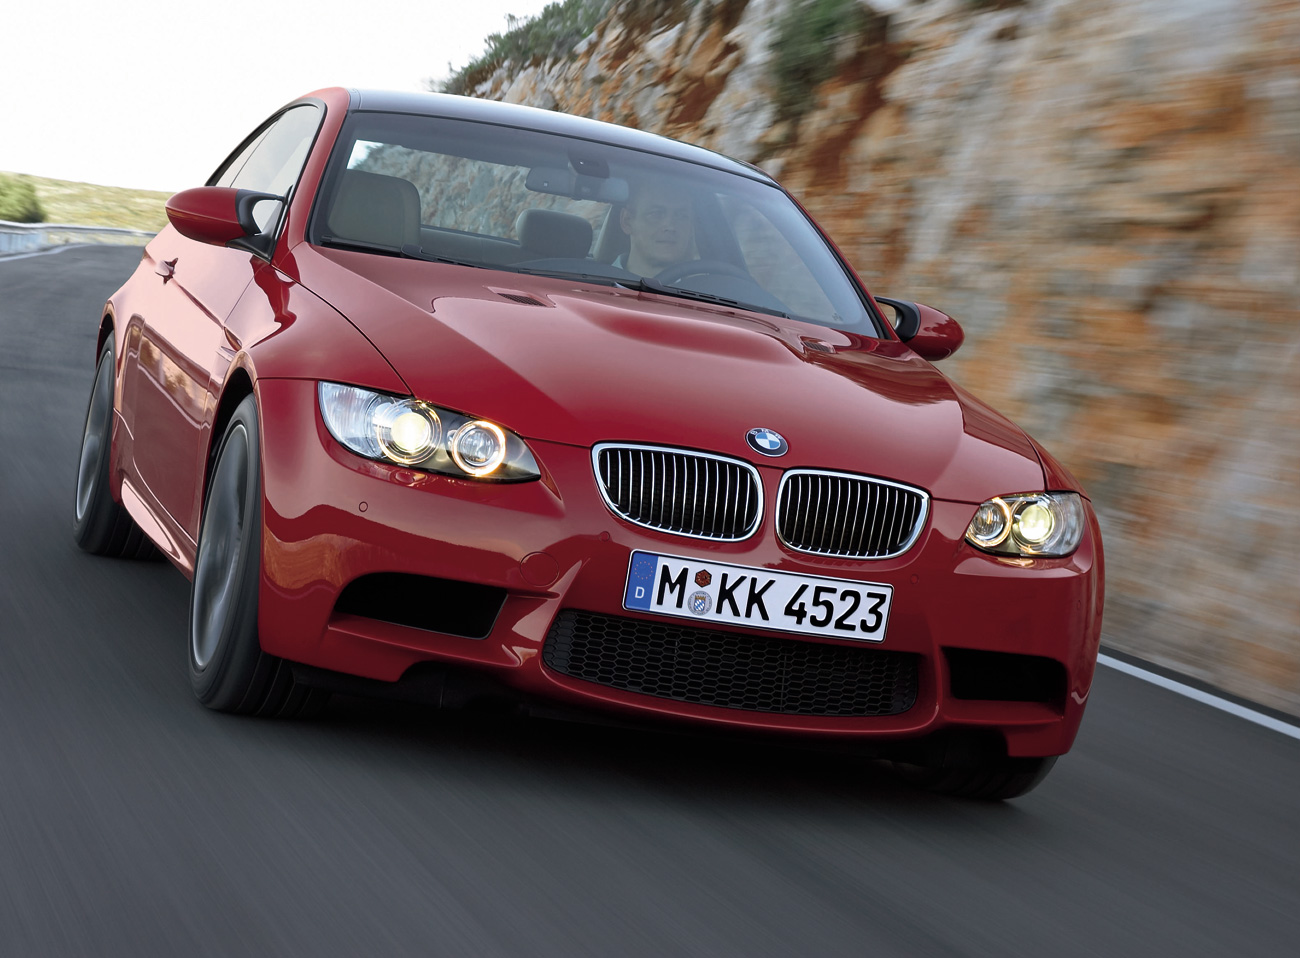 2012 cars wallpaper bmw m3 coupe 2009 motor car wallpaper. Black Bedroom Furniture Sets. Home Design Ideas